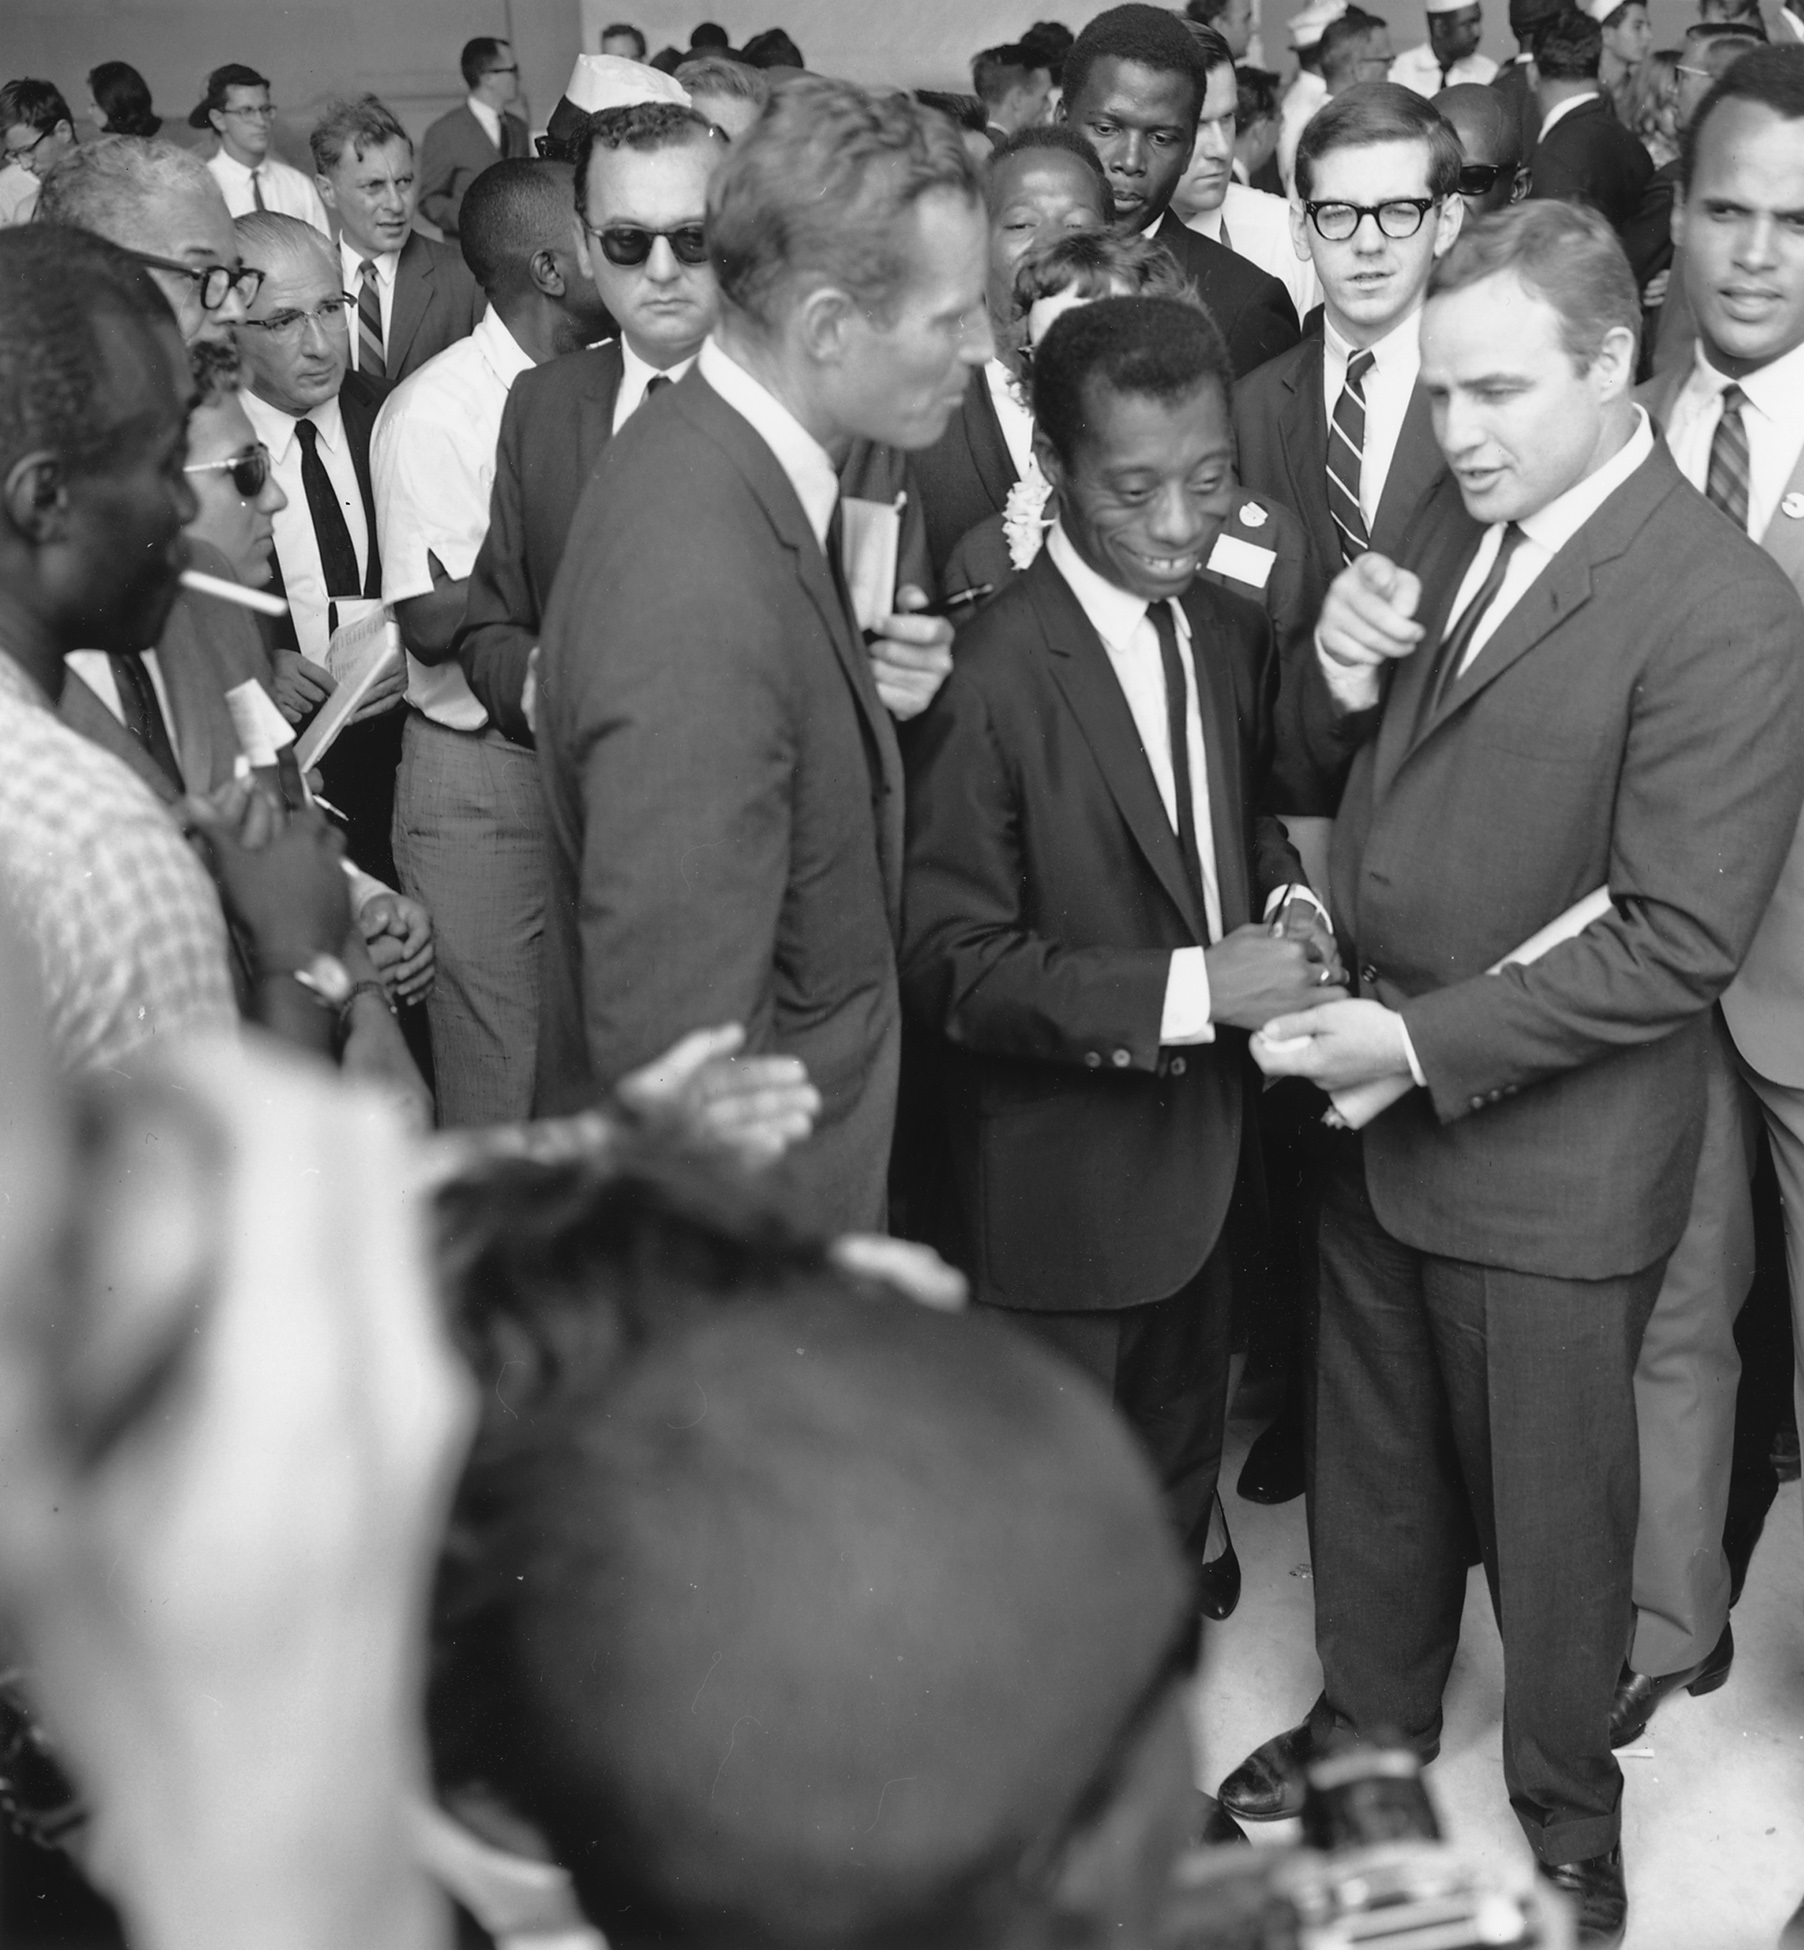 File:Heston Baldwin Brando Civil Rights March 1963.jpg